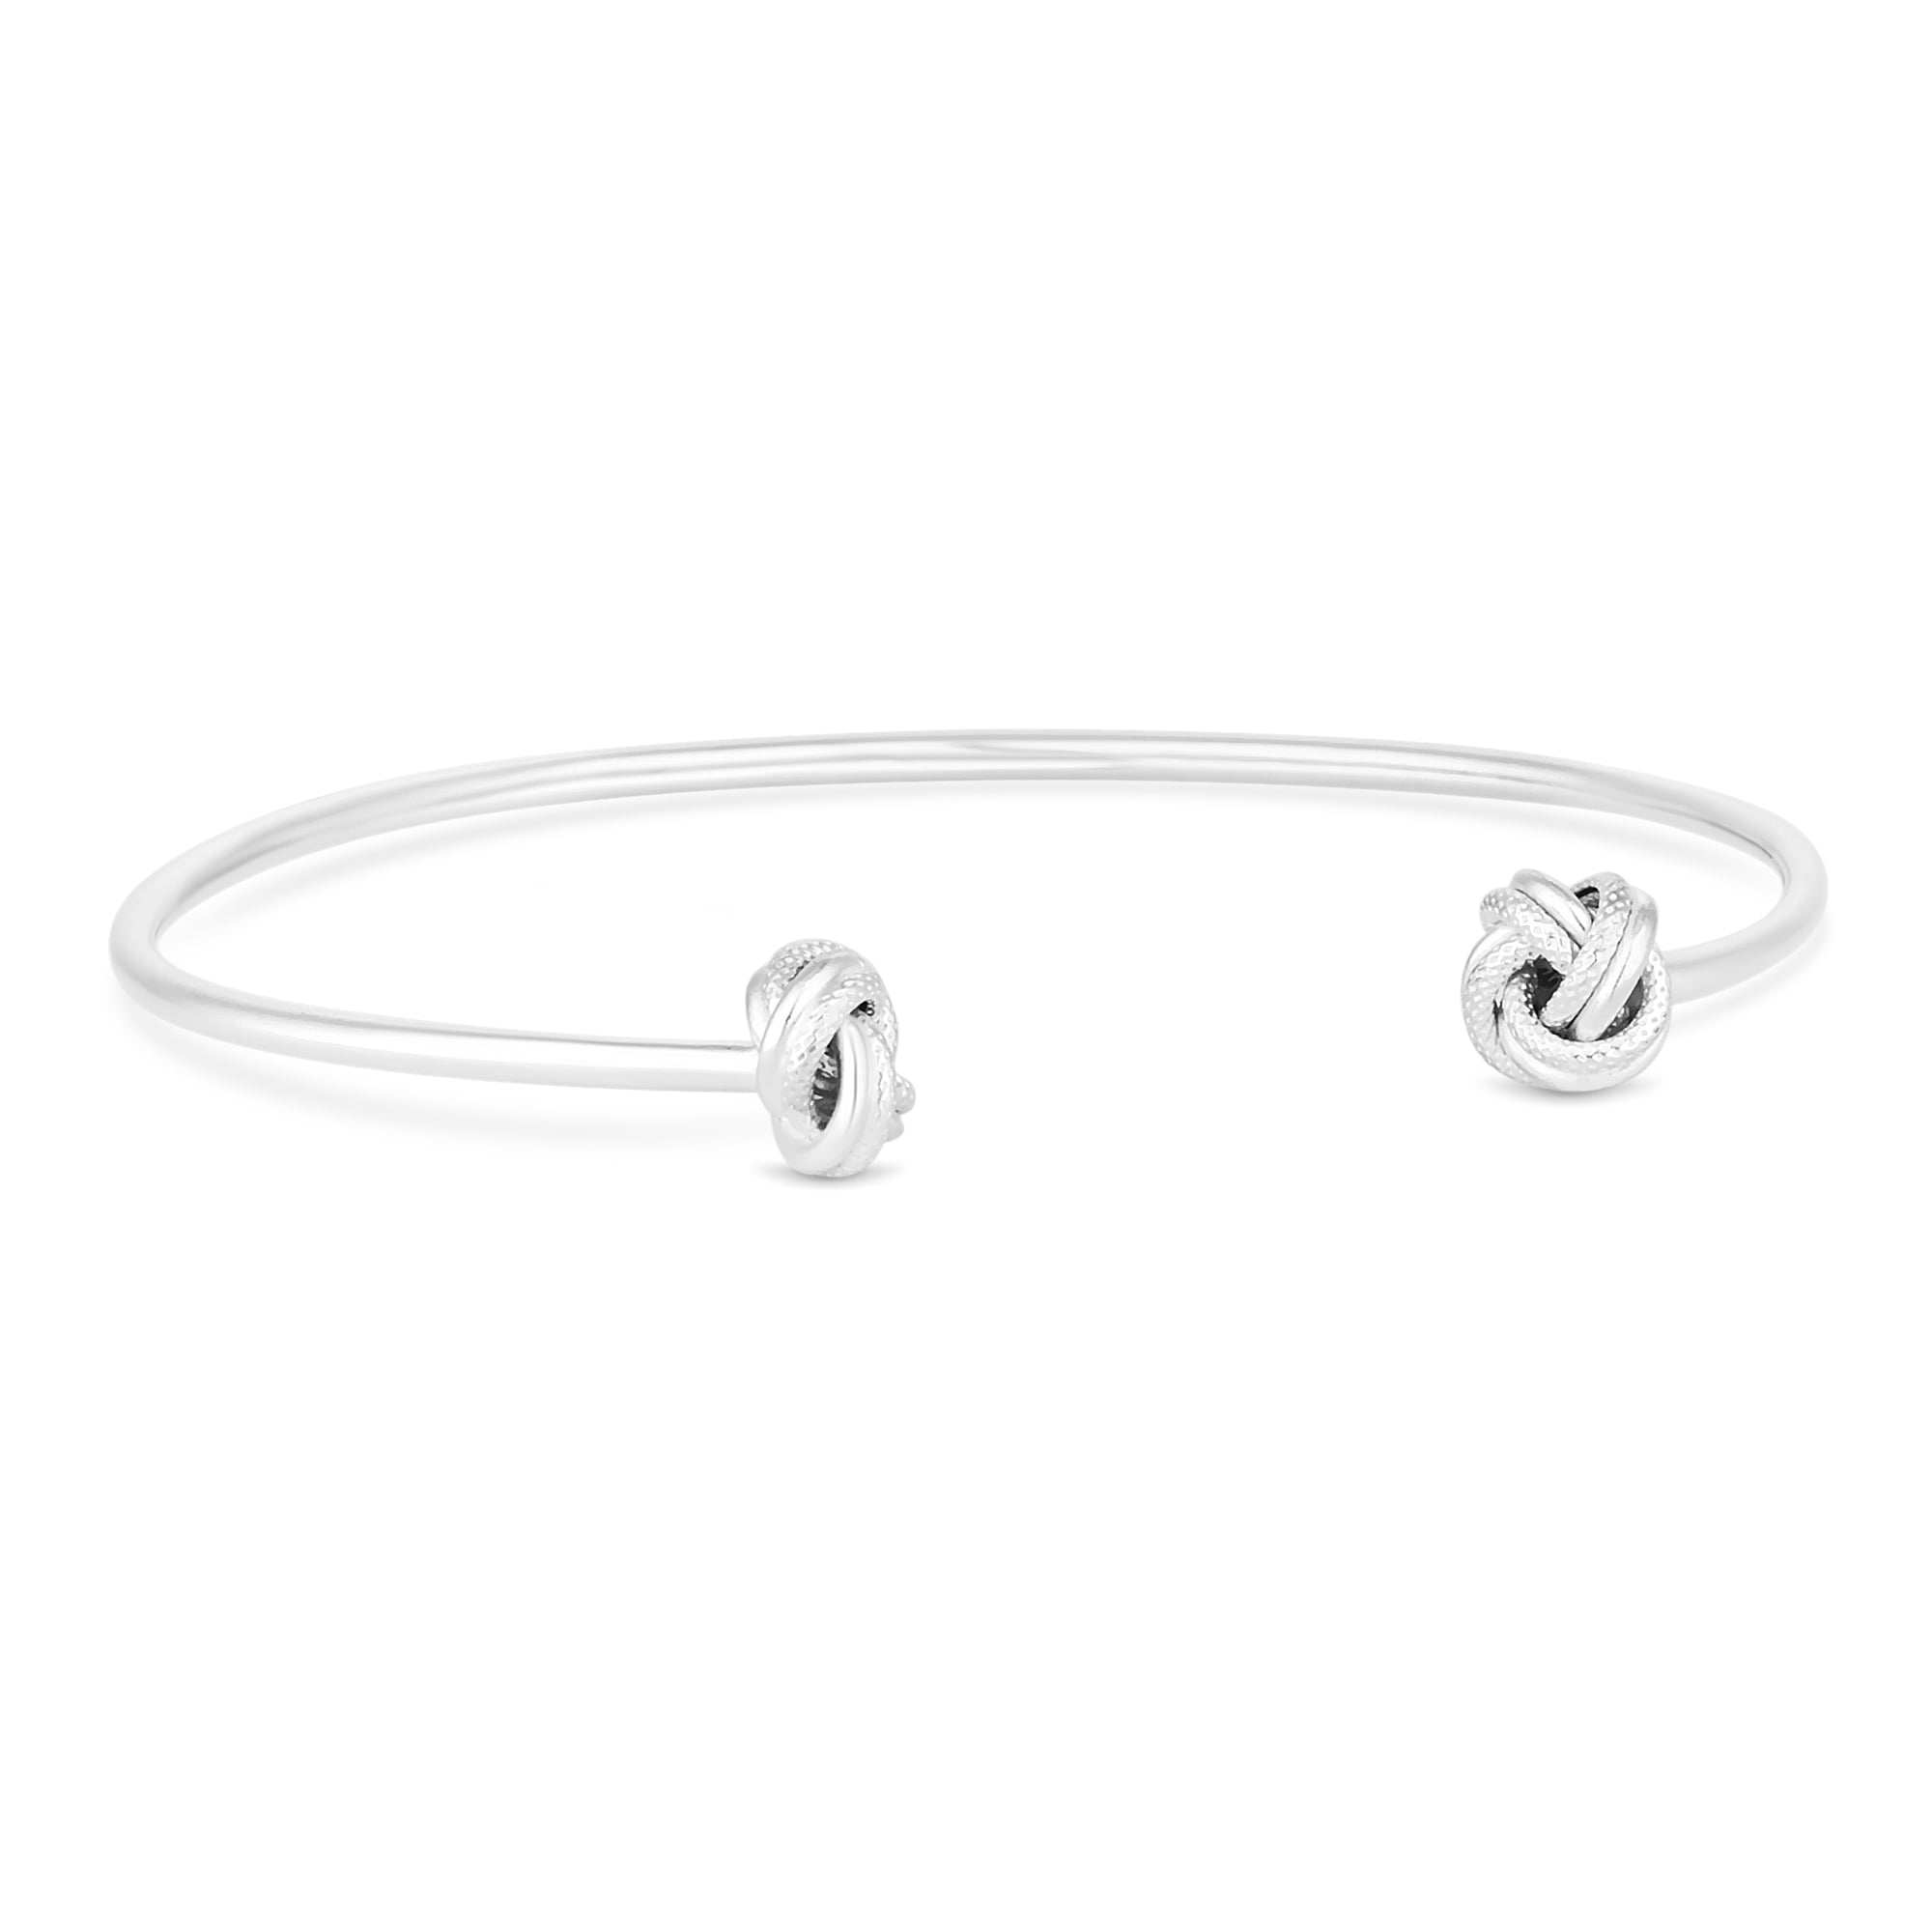 products cuff joolz bangles initialcuff martha initial calvo bangle by initital